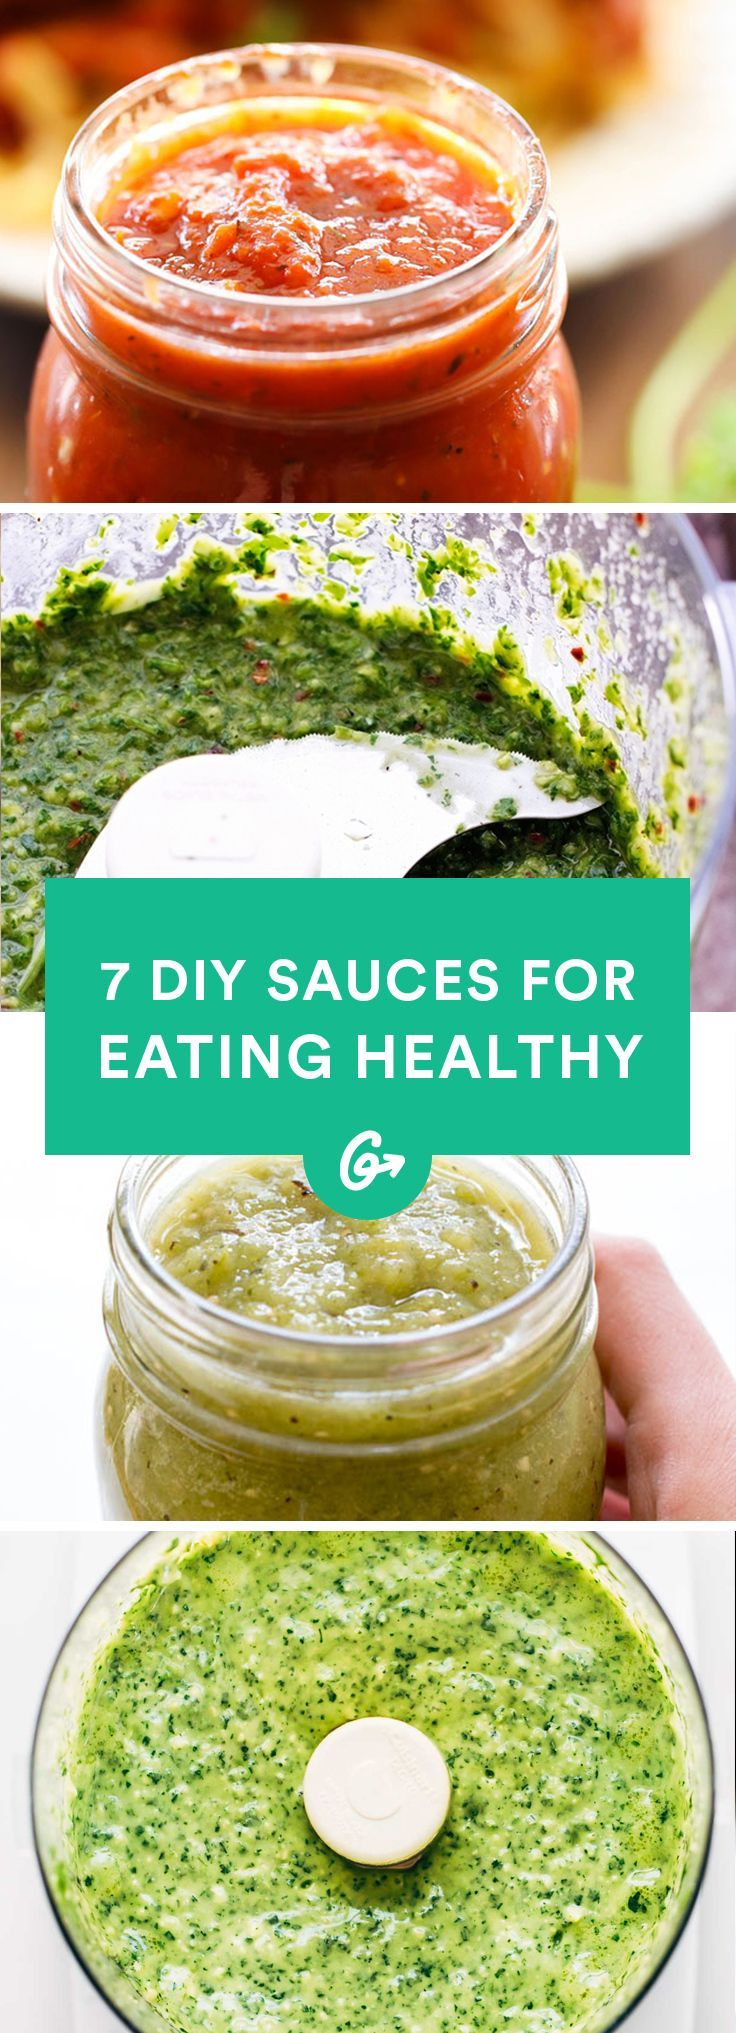 Sometimes we need a little something extra to keep things interesting. Which is when we turn to sauce. #healthy #sauces http://greatist.com/eat/sauce-recipes-spice-up-meal